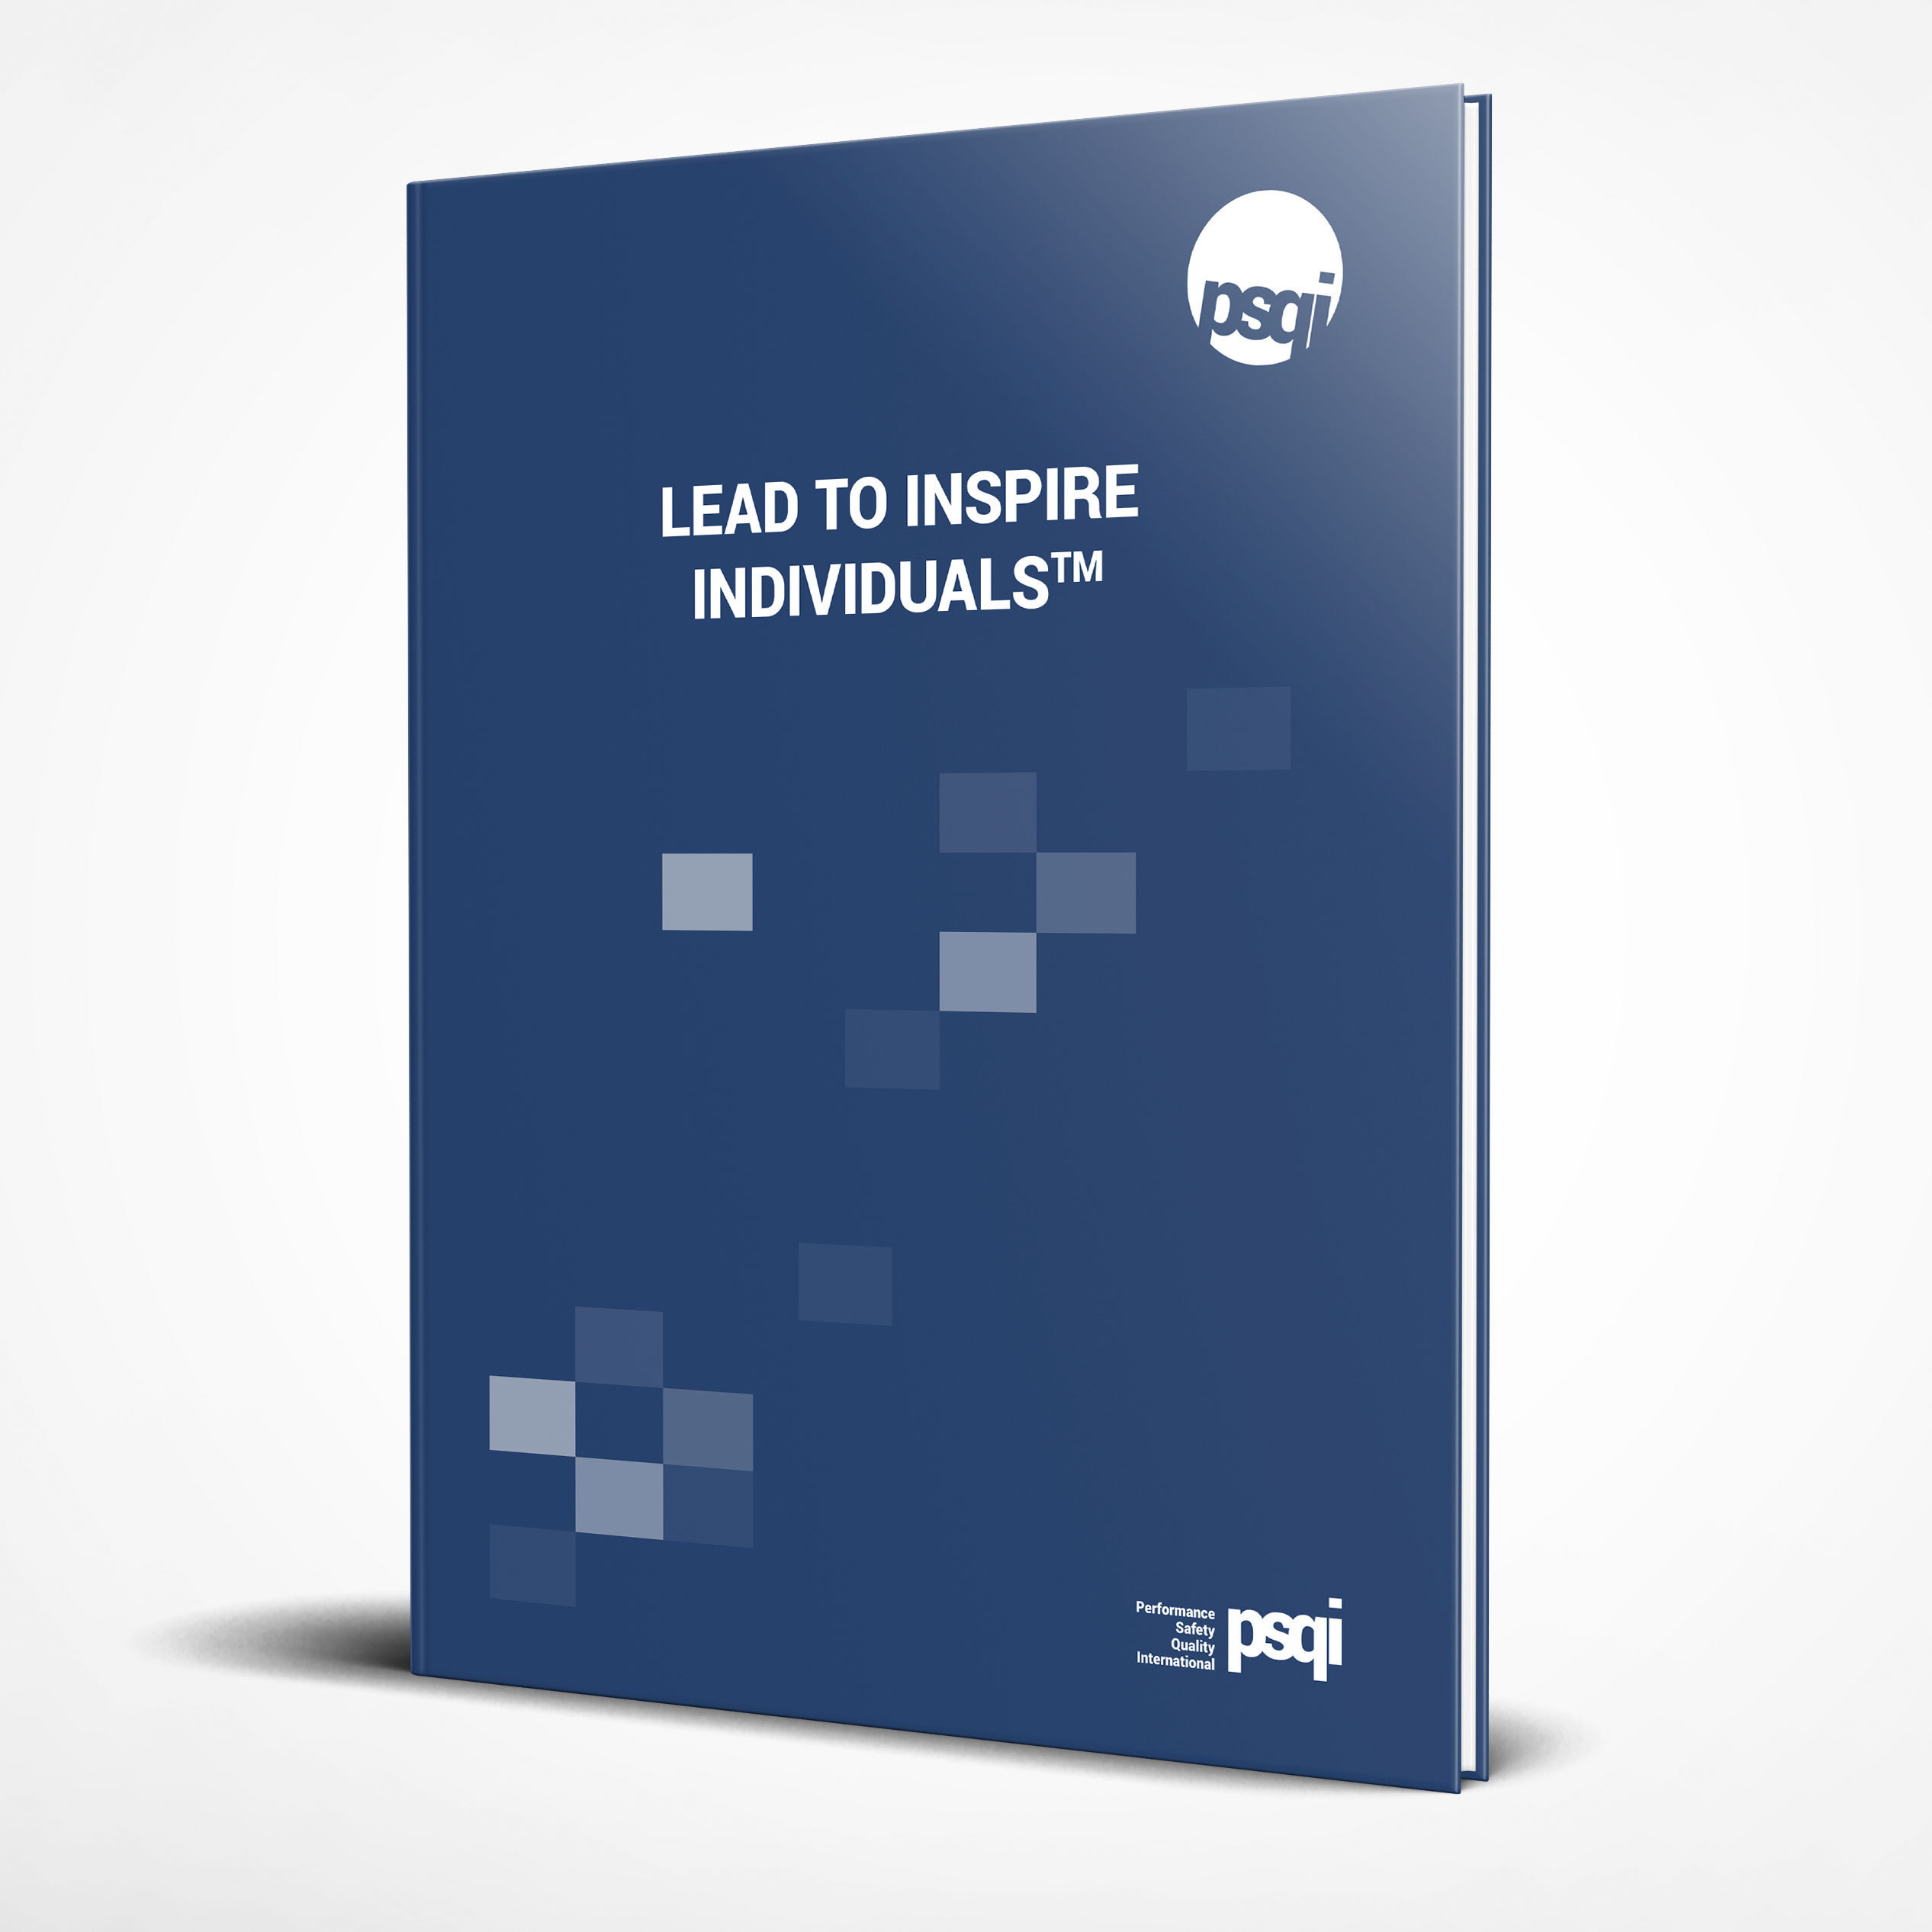 Lead_to_inspire_individuals-cover